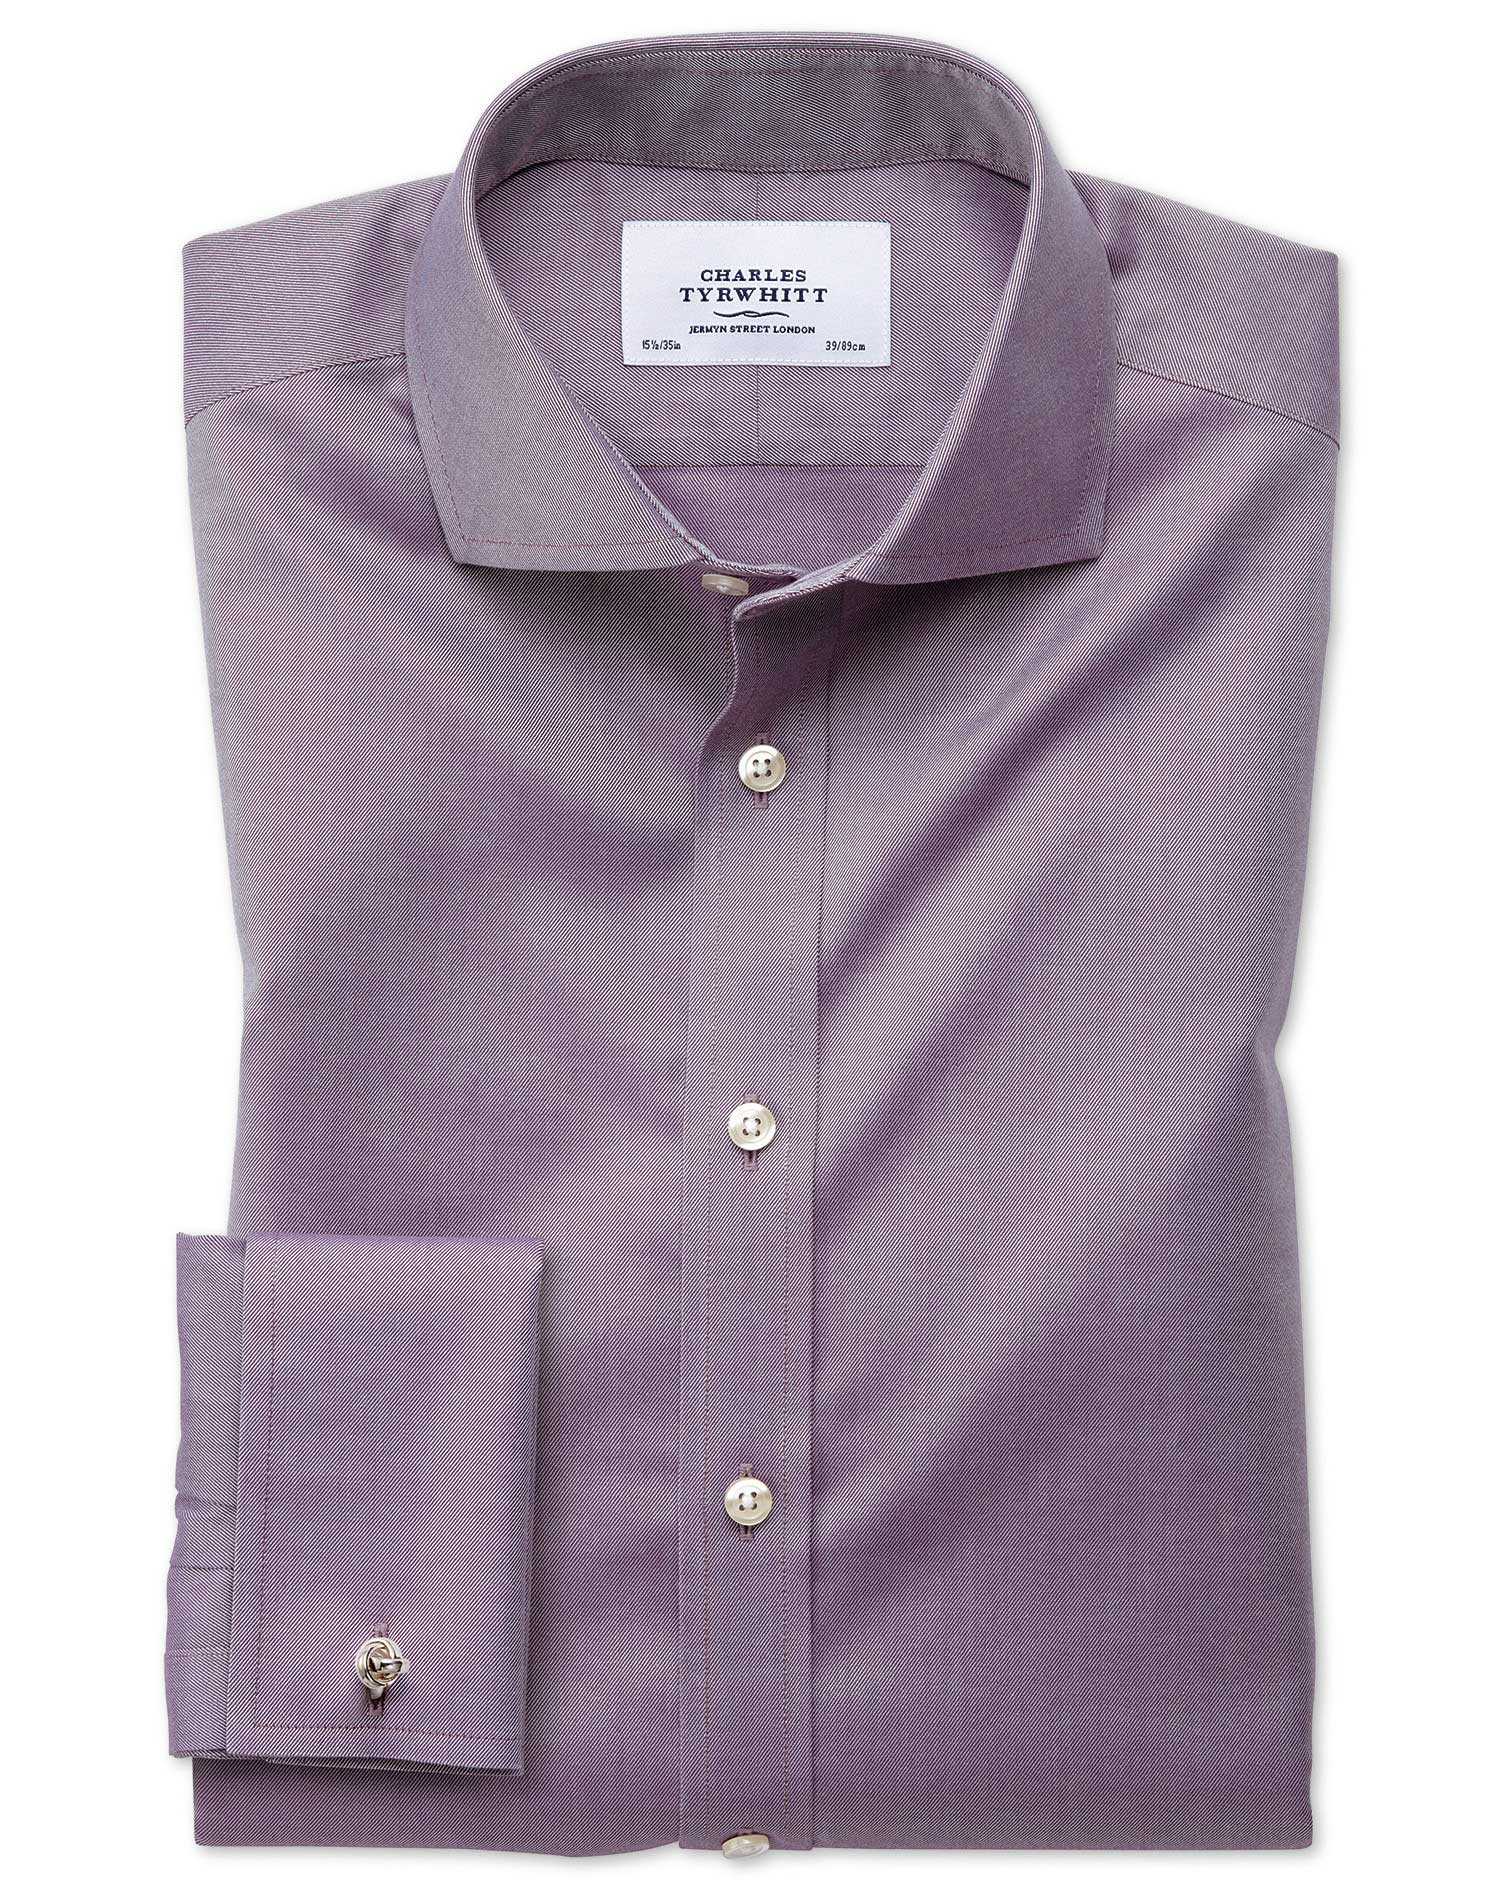 Slim Fit Cutaway Non-Iron Twill Dark Purple Cotton Formal Shirt Single Cuff Size 15/32 by Charles Ty